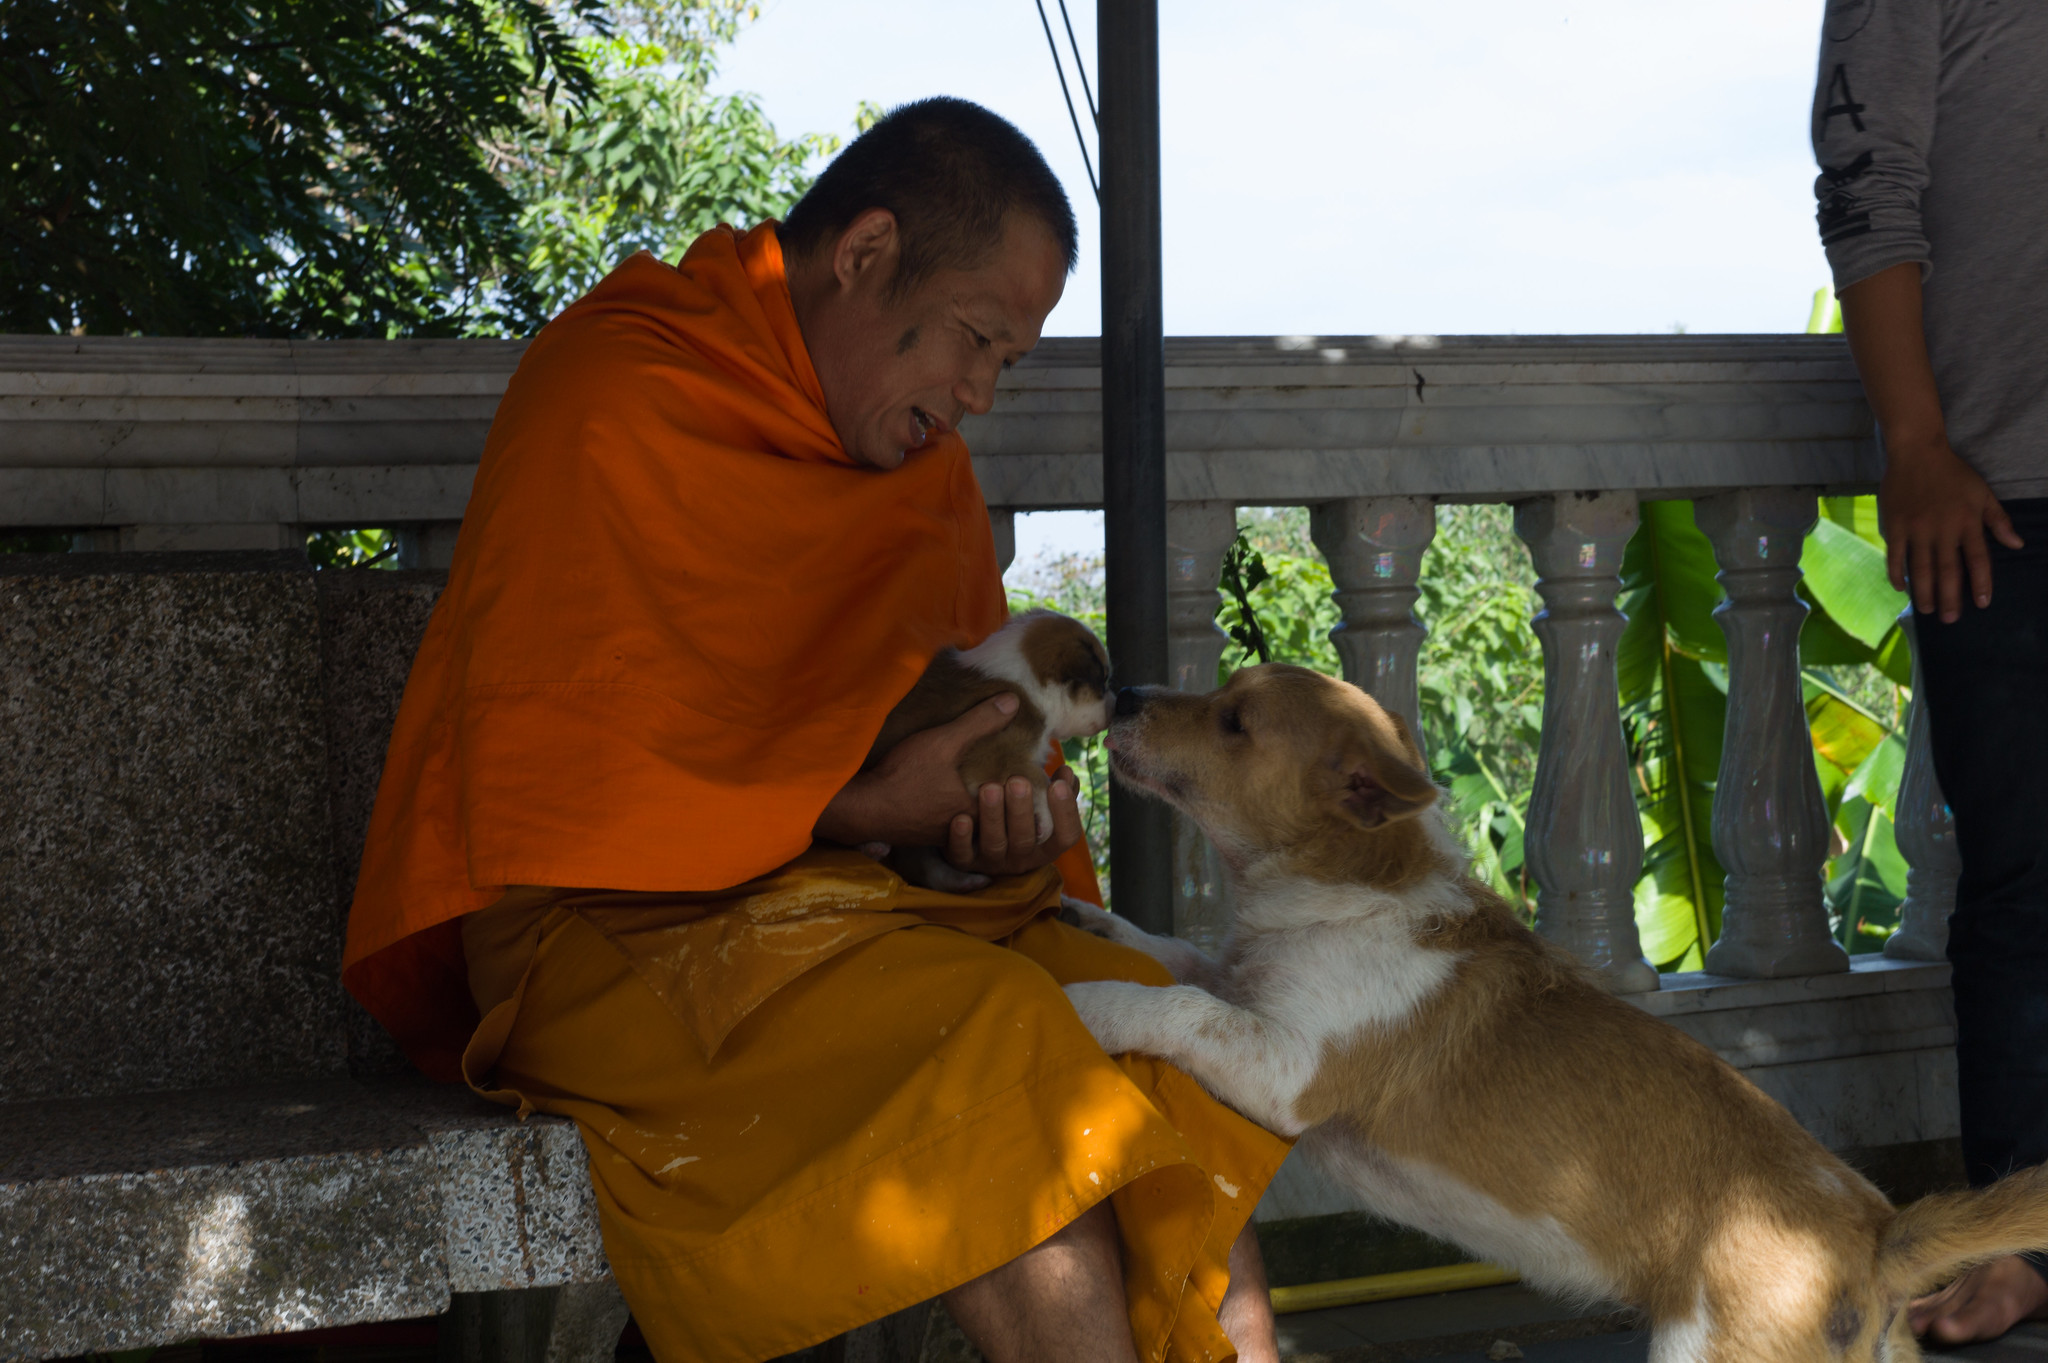 Monk and Dogs